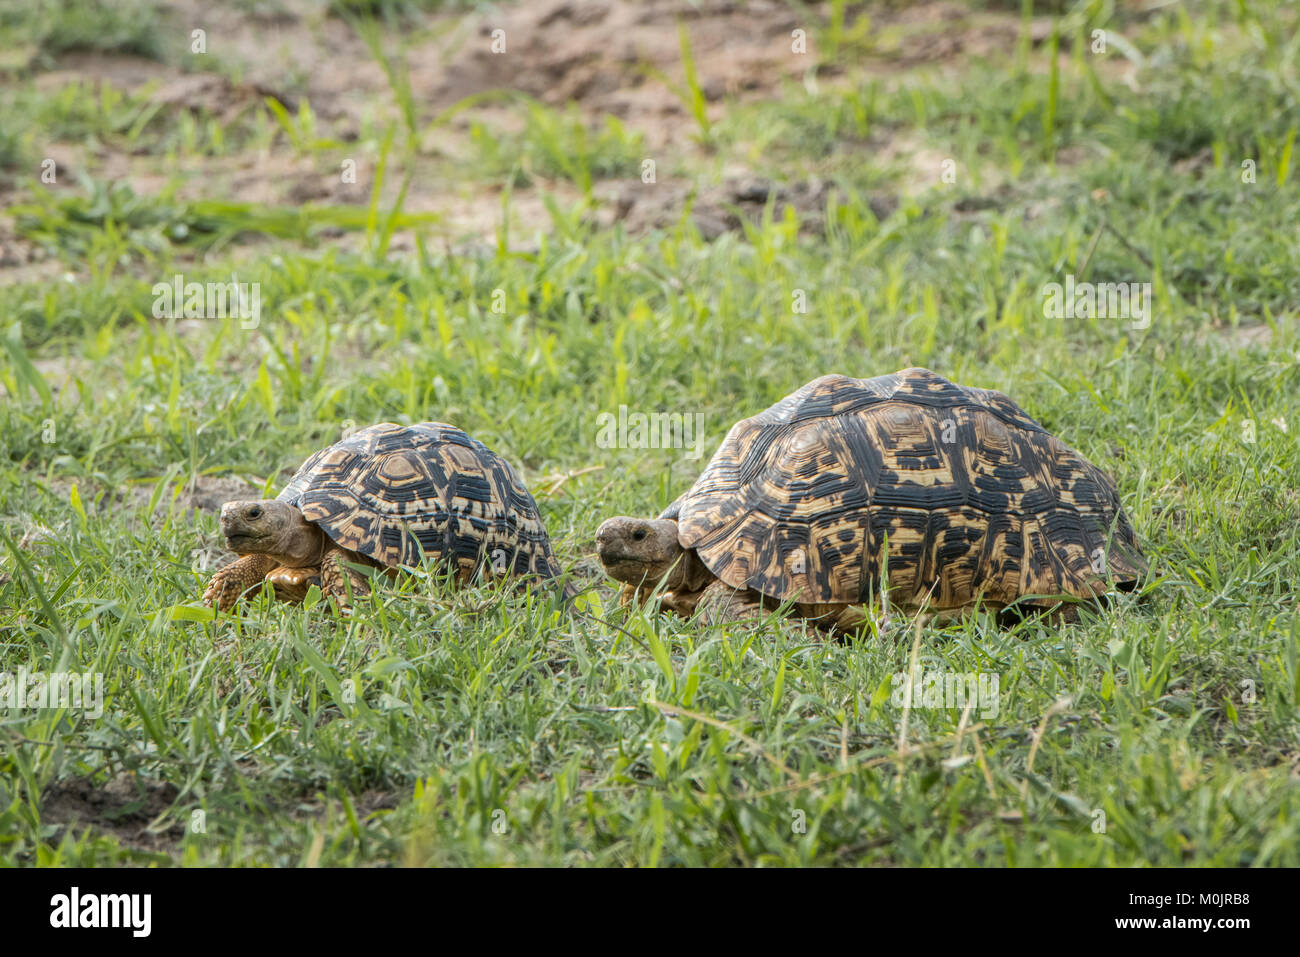 Leopard tortoises (Stigmochelys pardalis) walking in a row, animal pair, Chobe River Front, Chobe National Park, - Stock Image